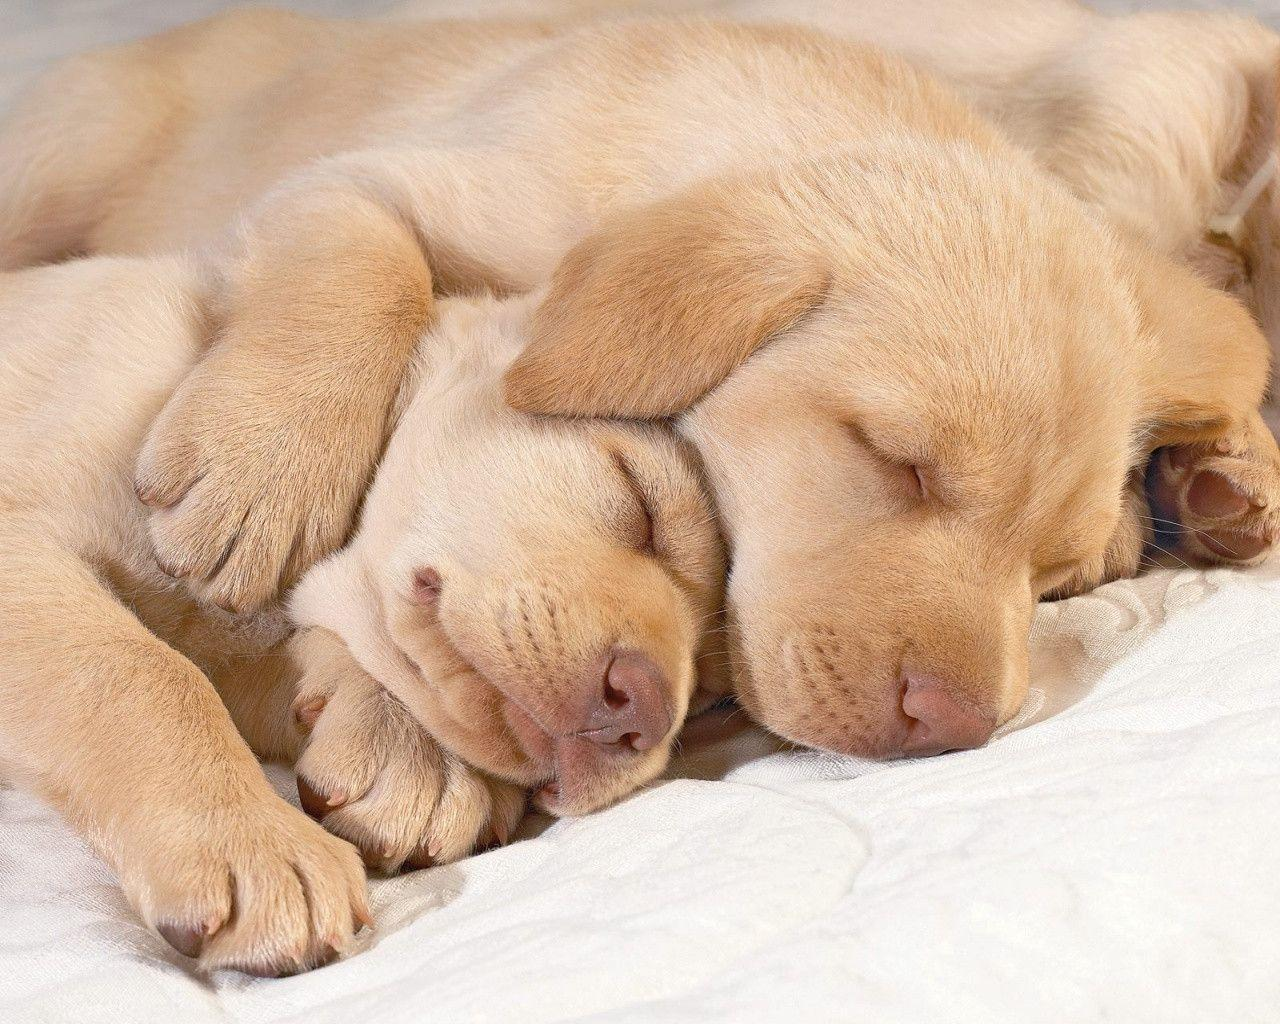 1280x1024 Sleeping puppies desktop PC and Mac wallpaper